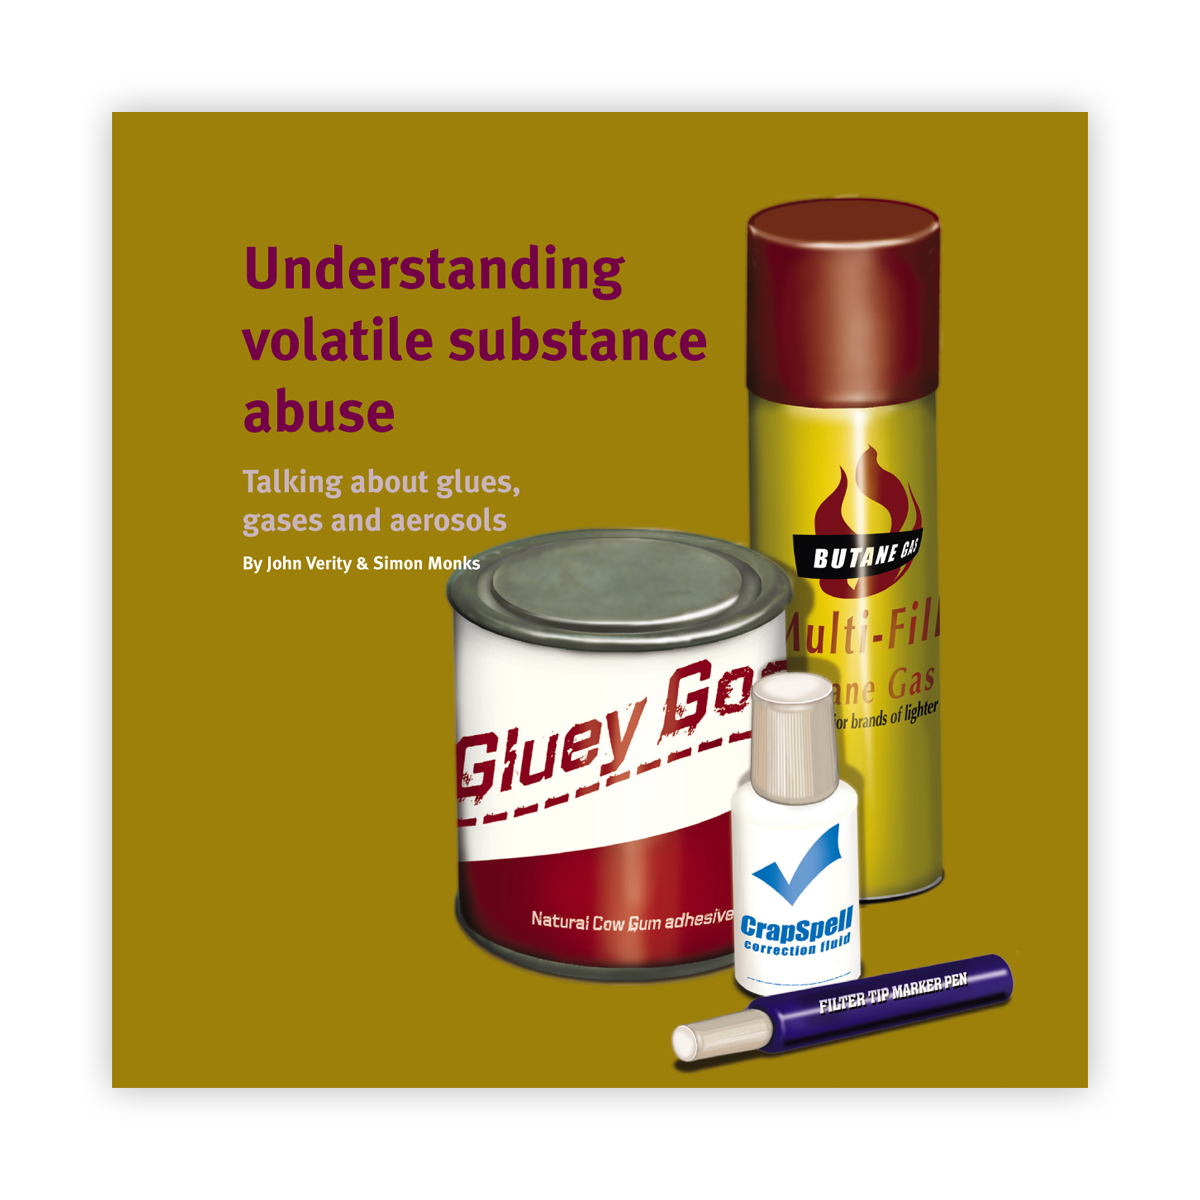 Understanding volatile substance use